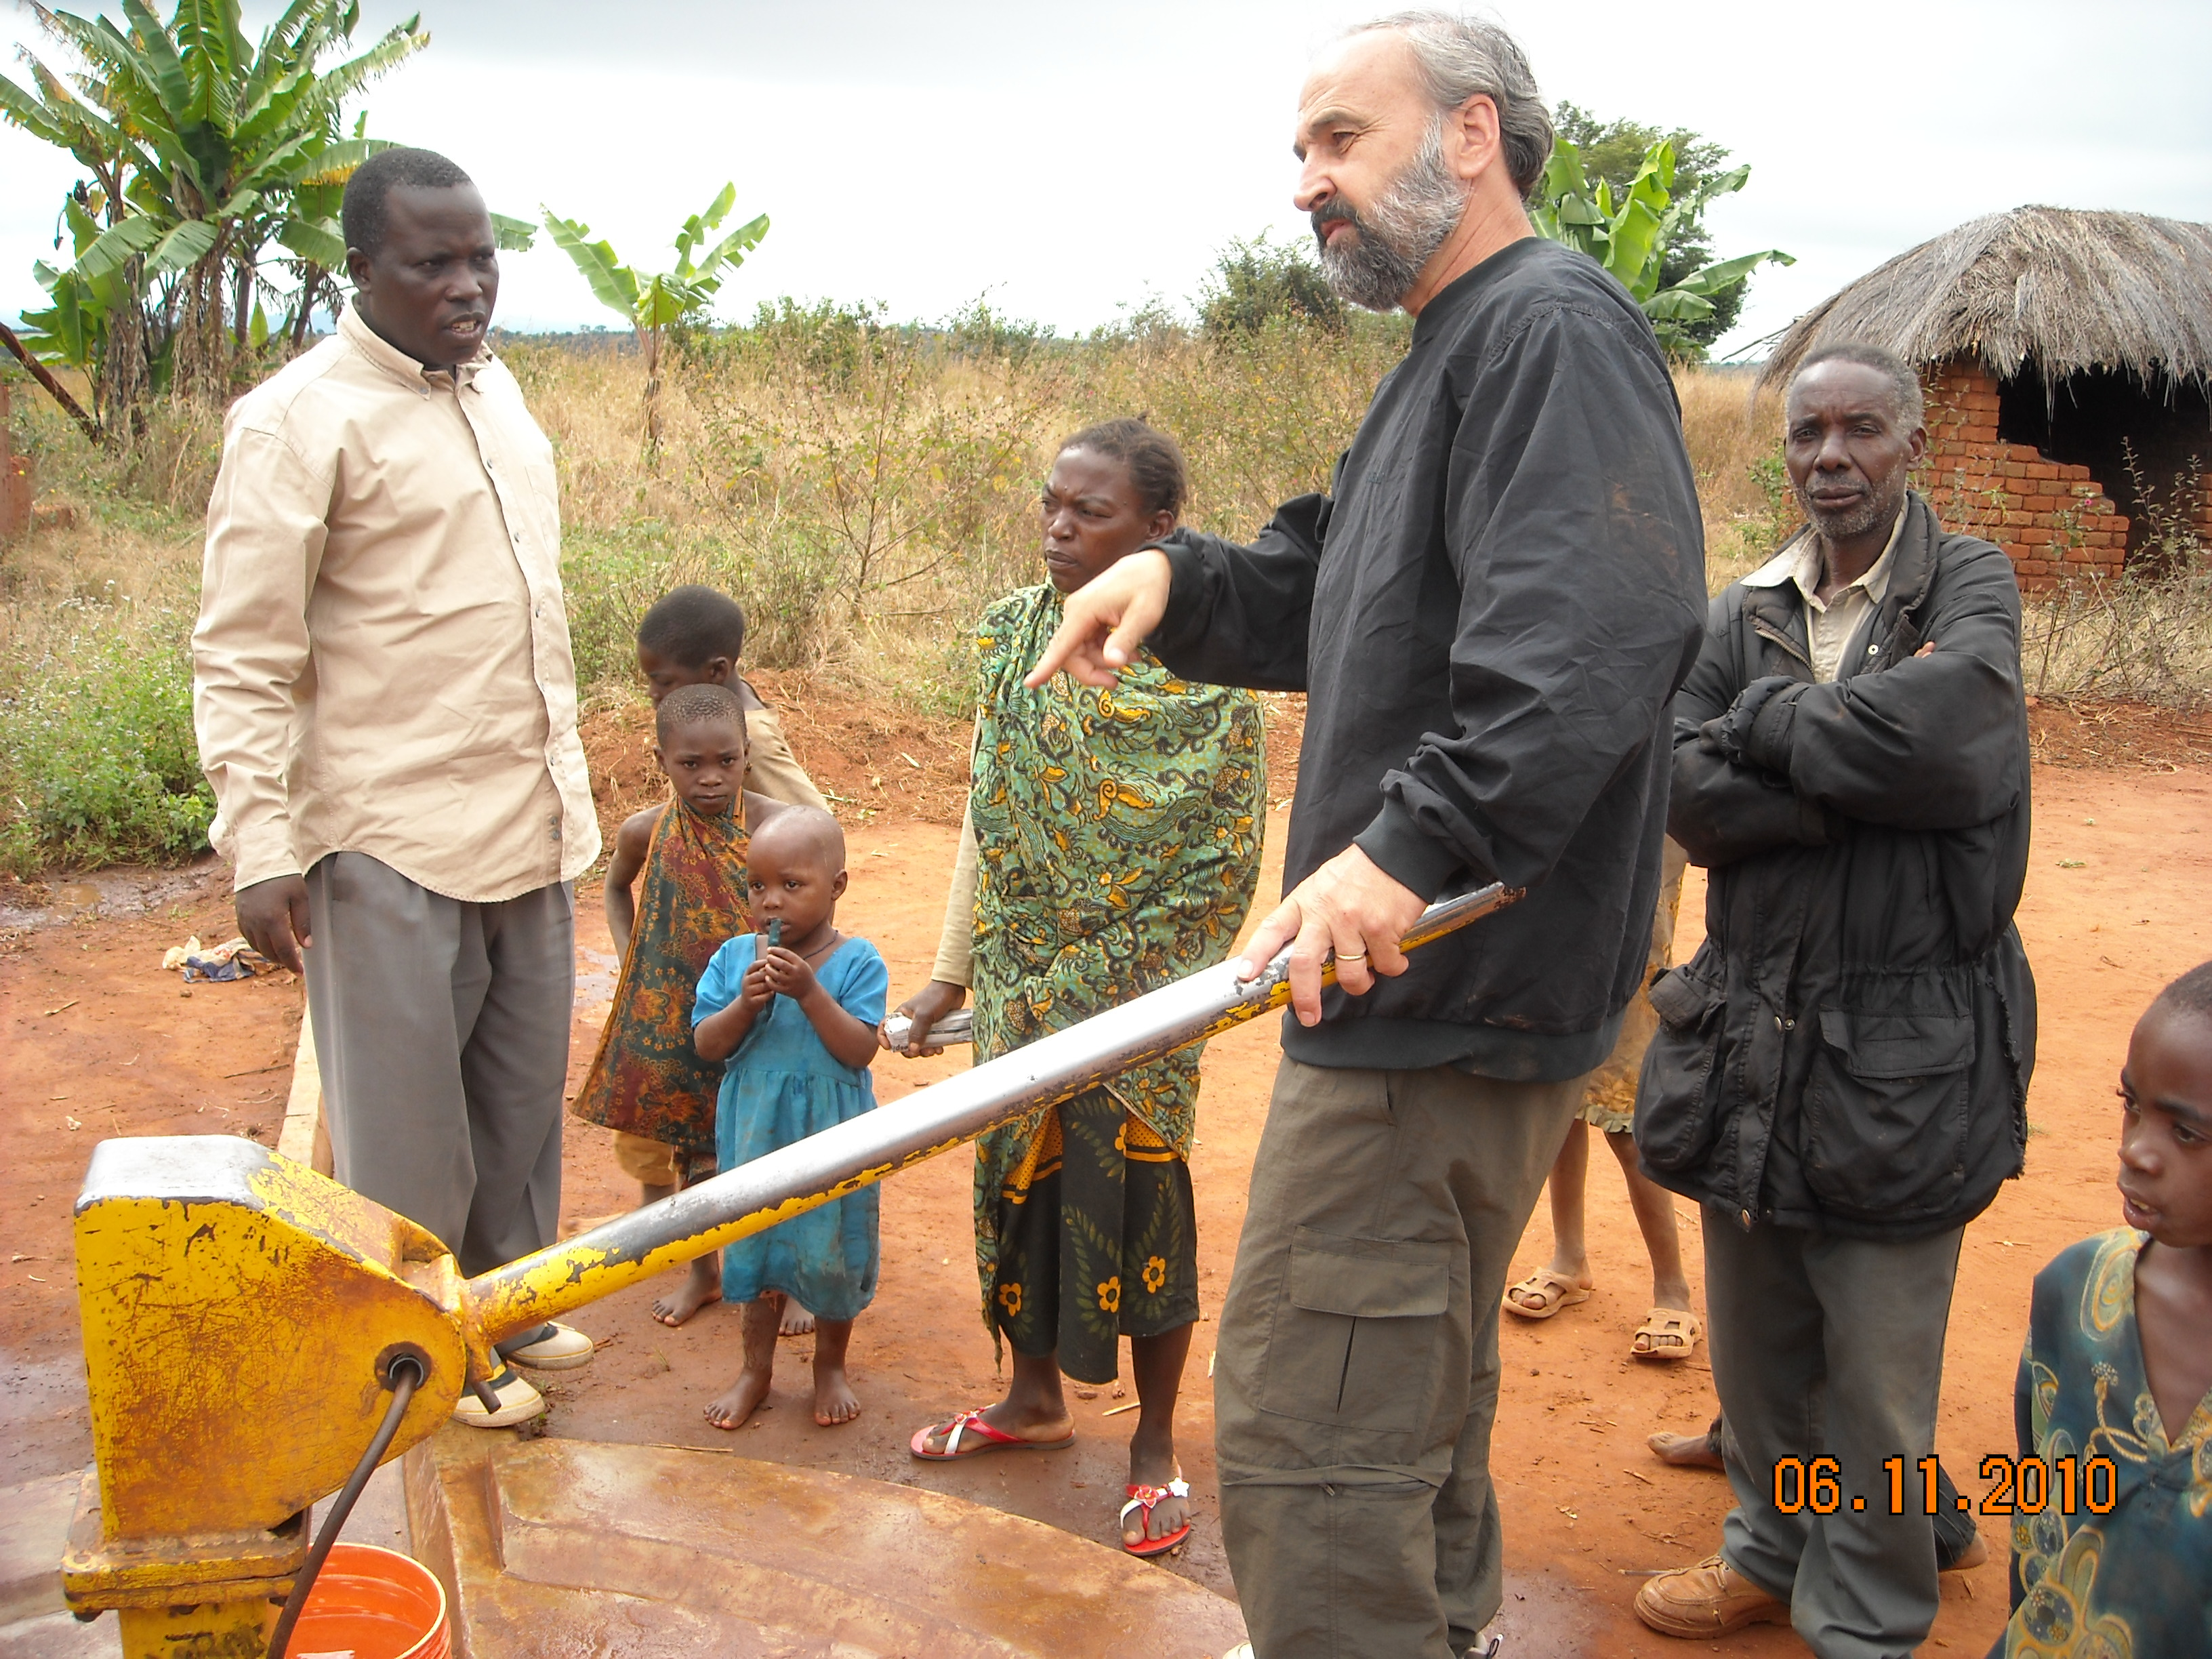 Engineers Without Borders Tanzania Clean Water Project